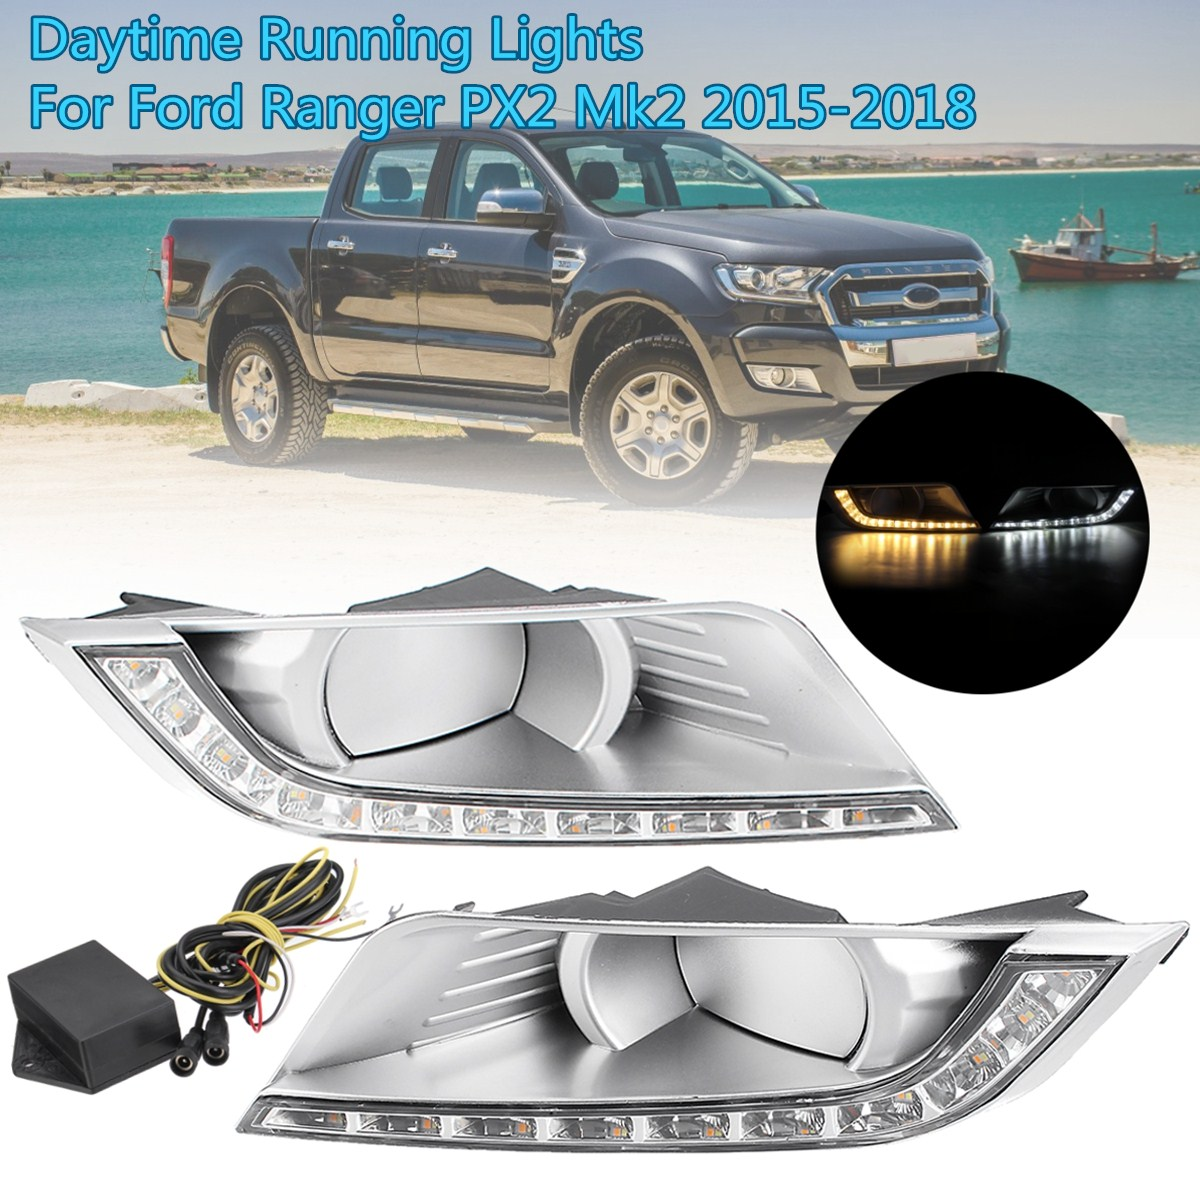 2x LED Daytime Running Lights Daylight turn Signal DRL Lamp car Styling light for Ford Ranger PX Mk2 2015 2016 2017 2018 car styling 2x car light 8led drl fog driving daylight daytime running led for bmw for audi white head lamp 2pcs per set